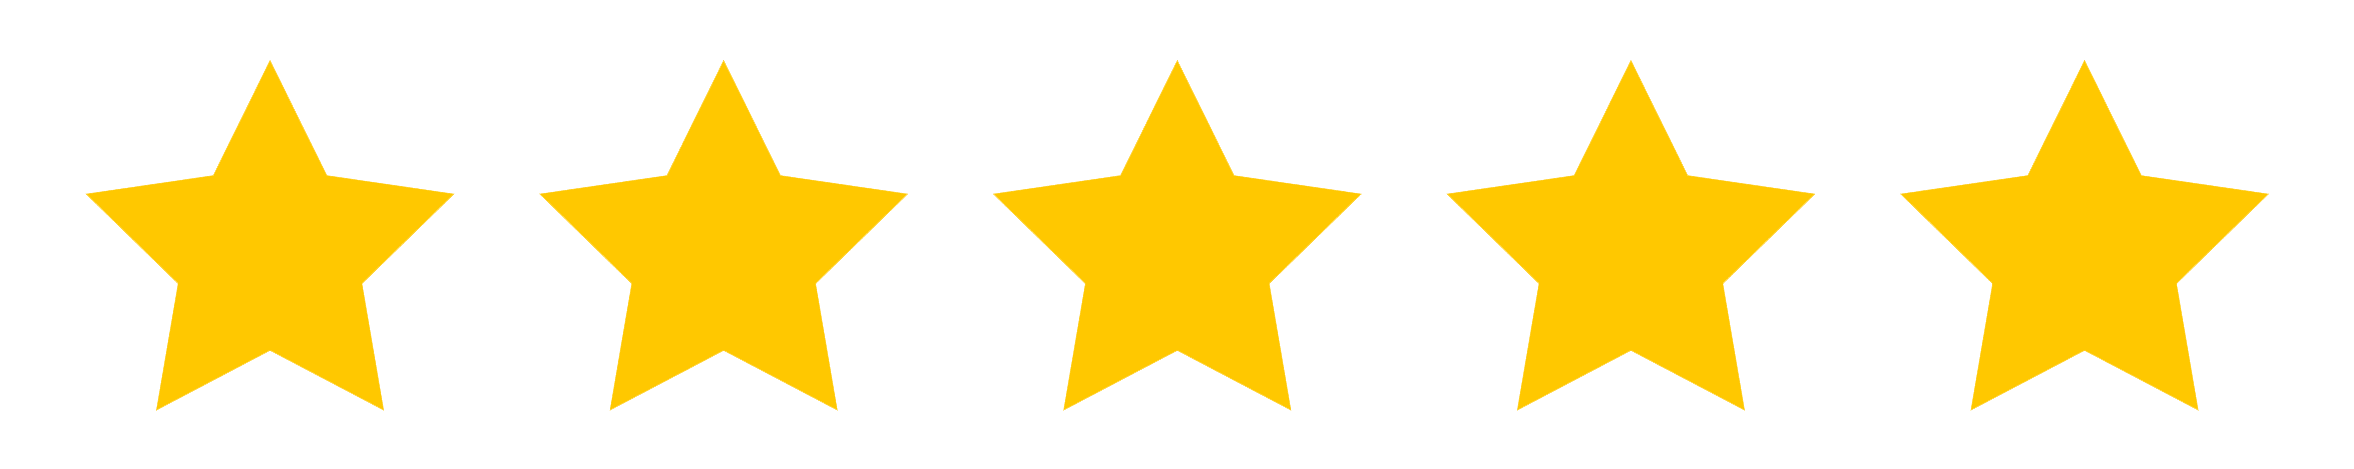 Reviews star rating from Diane C. for A-1 Self Storage in Glendale, California